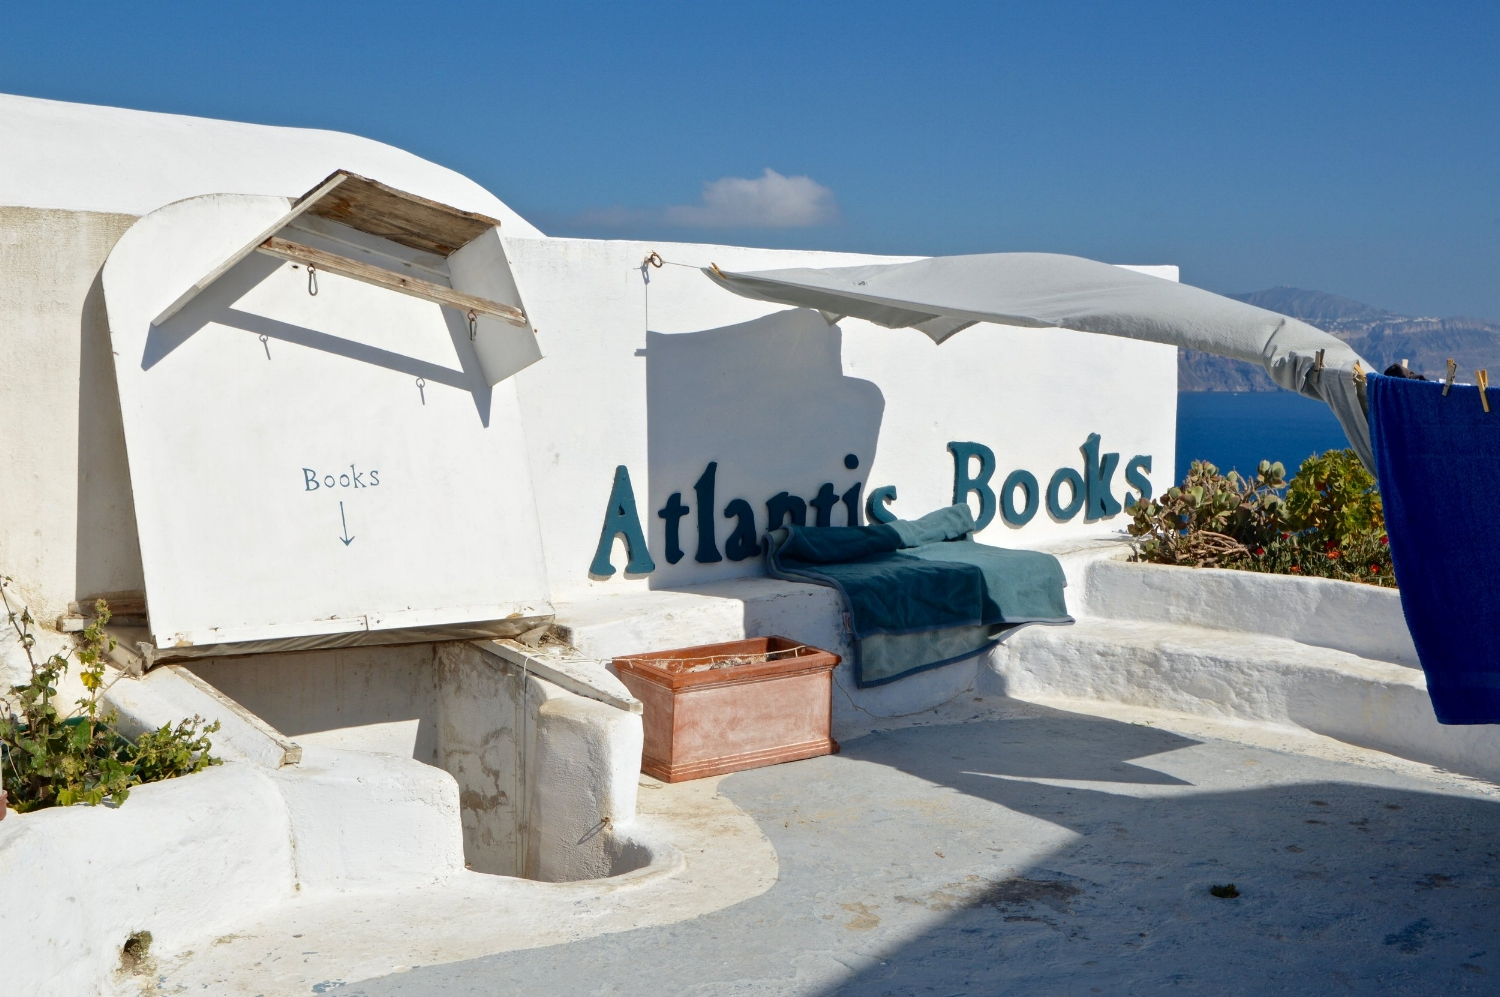 This Santorini Bookshop is the only bookstore I know where you can enter through the roof.